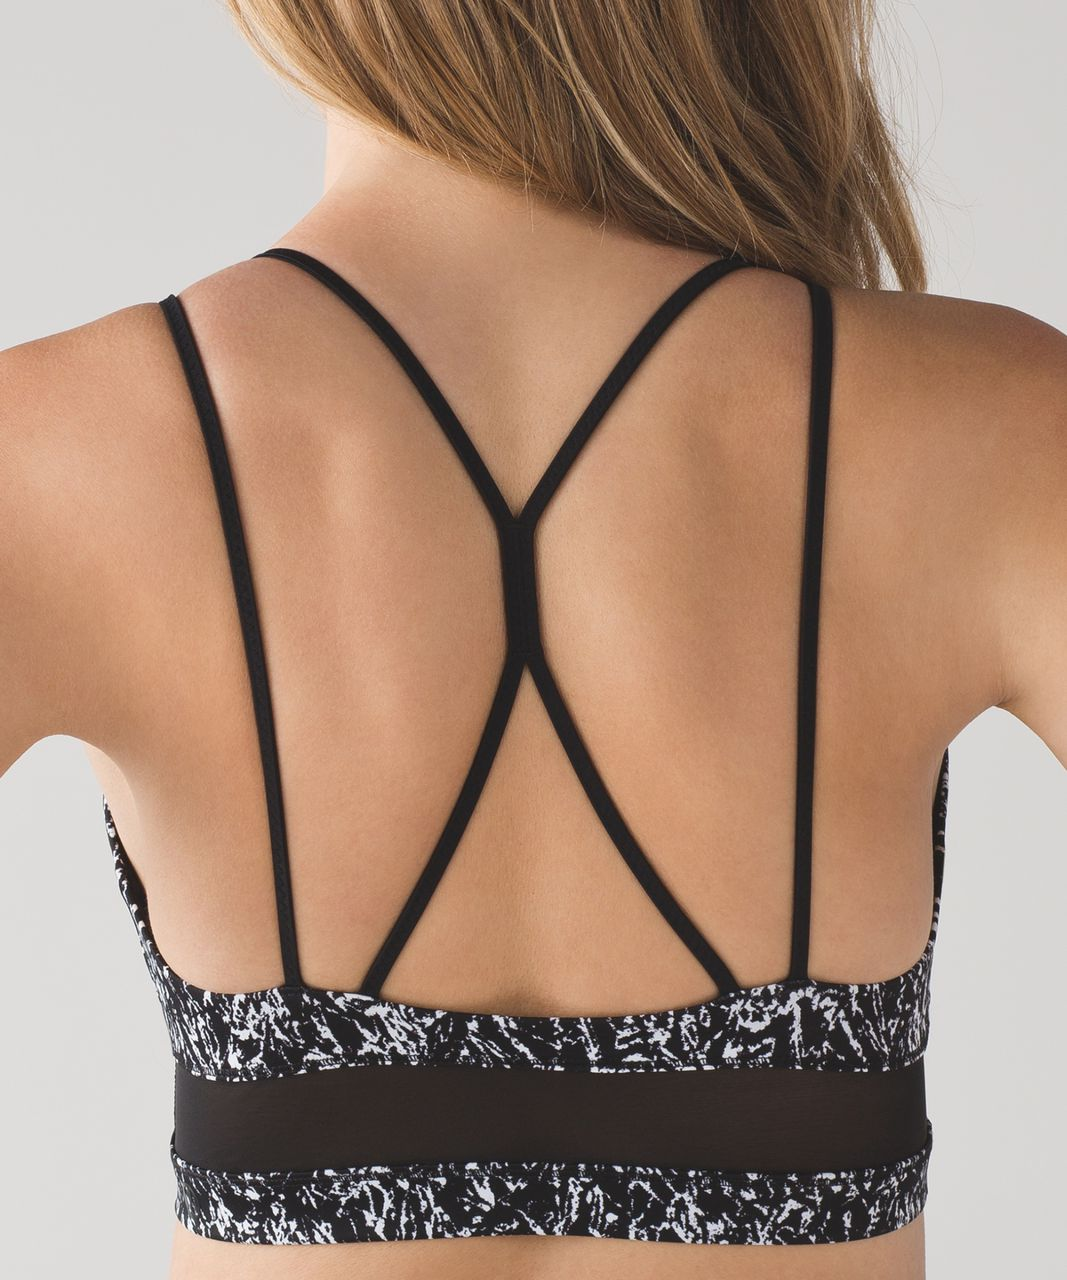 Lululemon Go With The Flow Top - Iced Wave White Black / Black